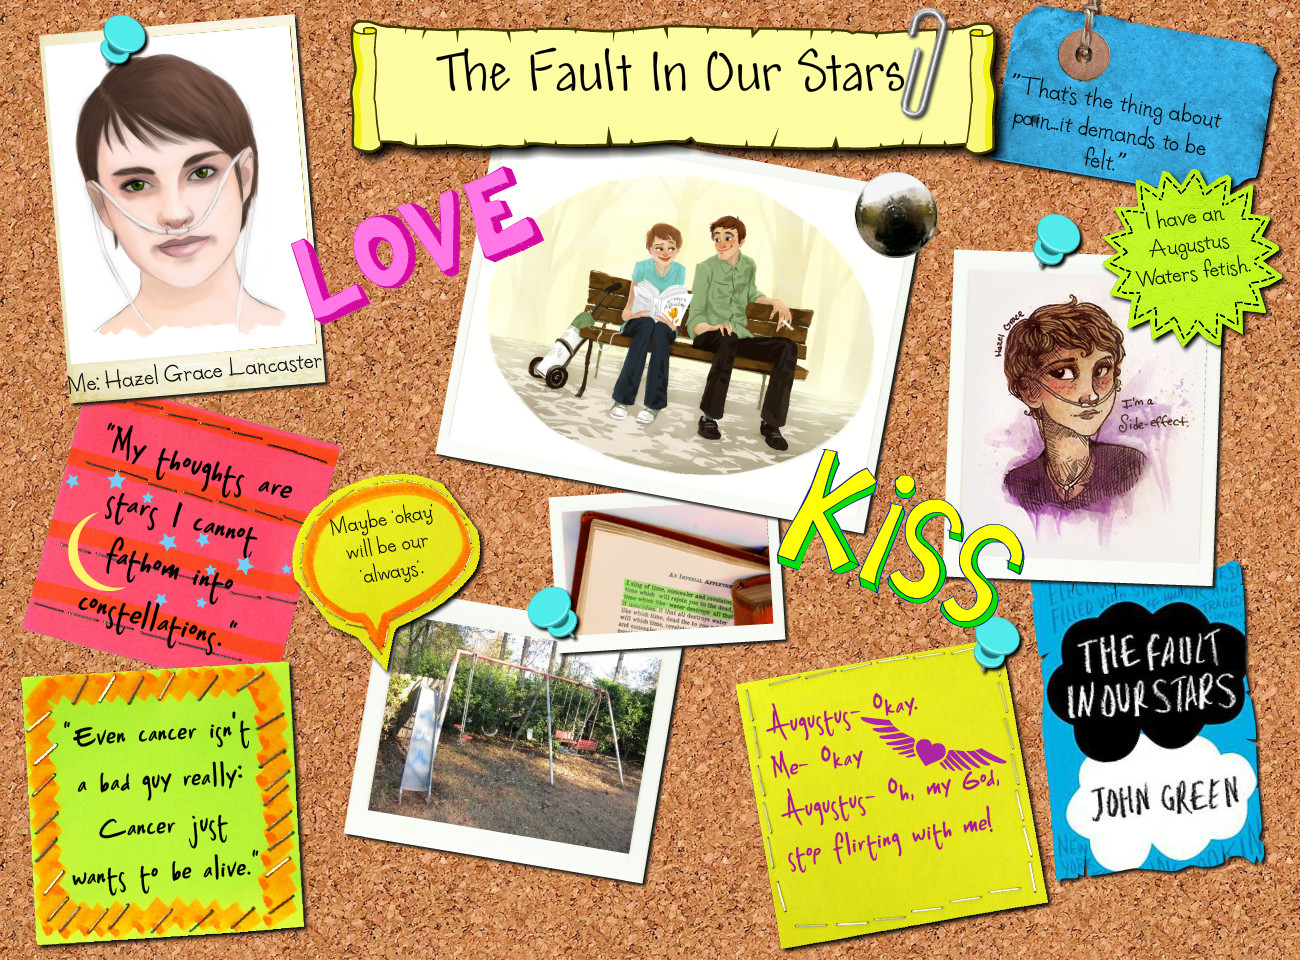 The Fault in Our Stars Quotes and - 653.0KB